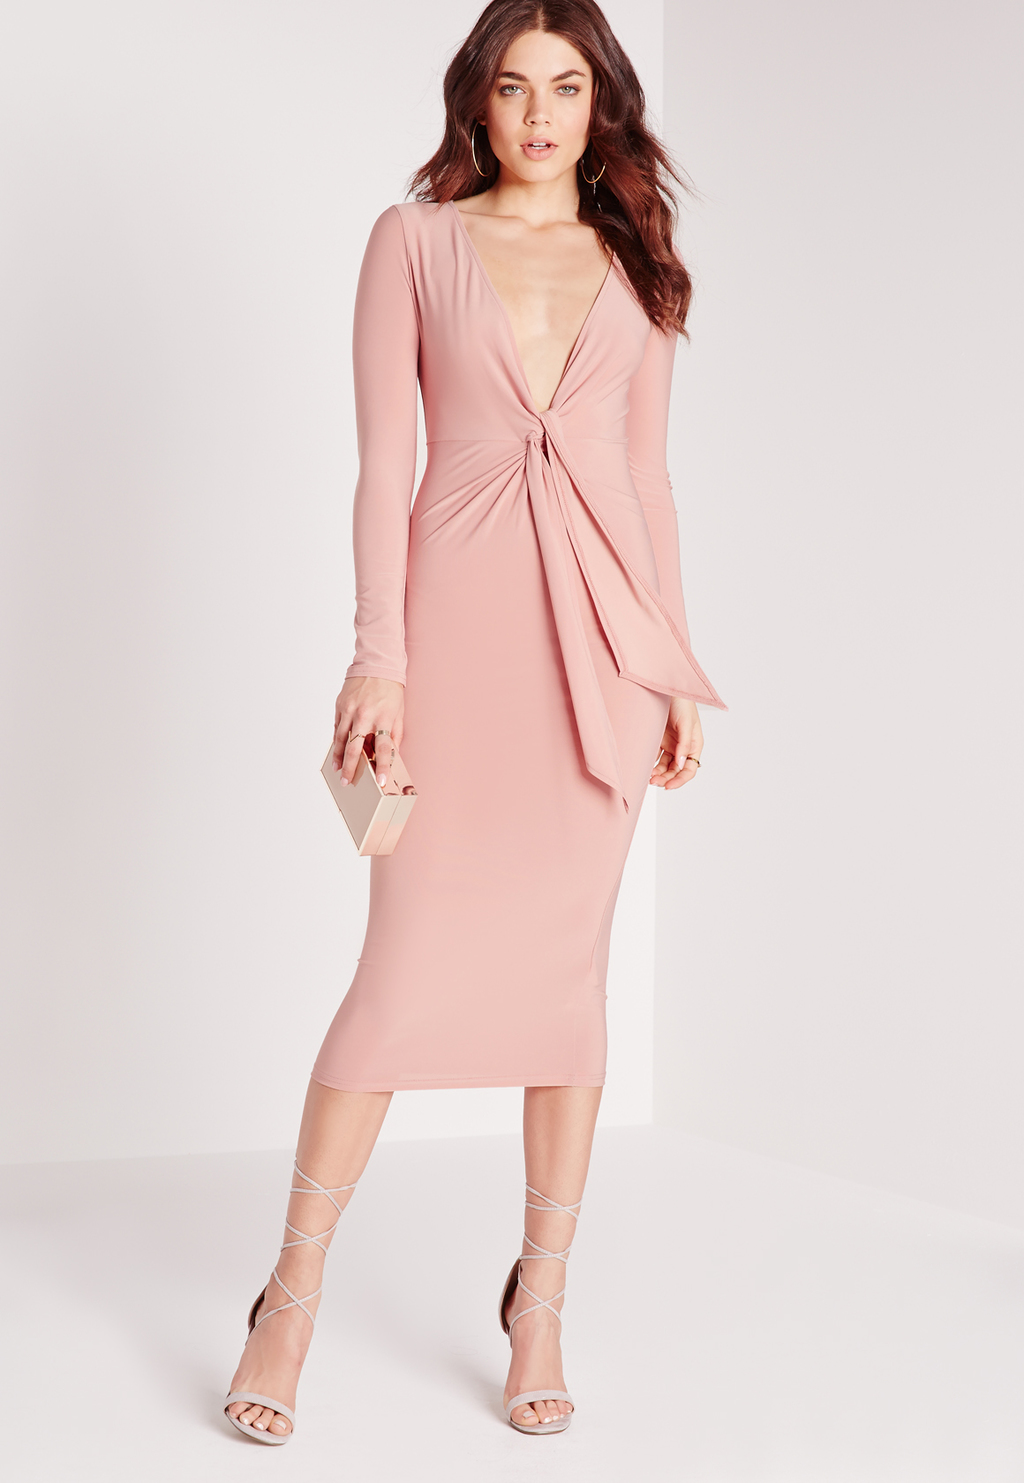 Knot Front Midi Dress Pink, Pink - length: below the knee; neckline: low v-neck; fit: tight; pattern: plain; style: bodycon; waist detail: belted waist/tie at waist/drawstring; predominant colour: blush; occasions: evening; fibres: polyester/polyamide - stretch; sleeve length: long sleeve; sleeve style: standard; texture group: jersey - clingy; pattern type: fabric; season: s/s 2016; wardrobe: event